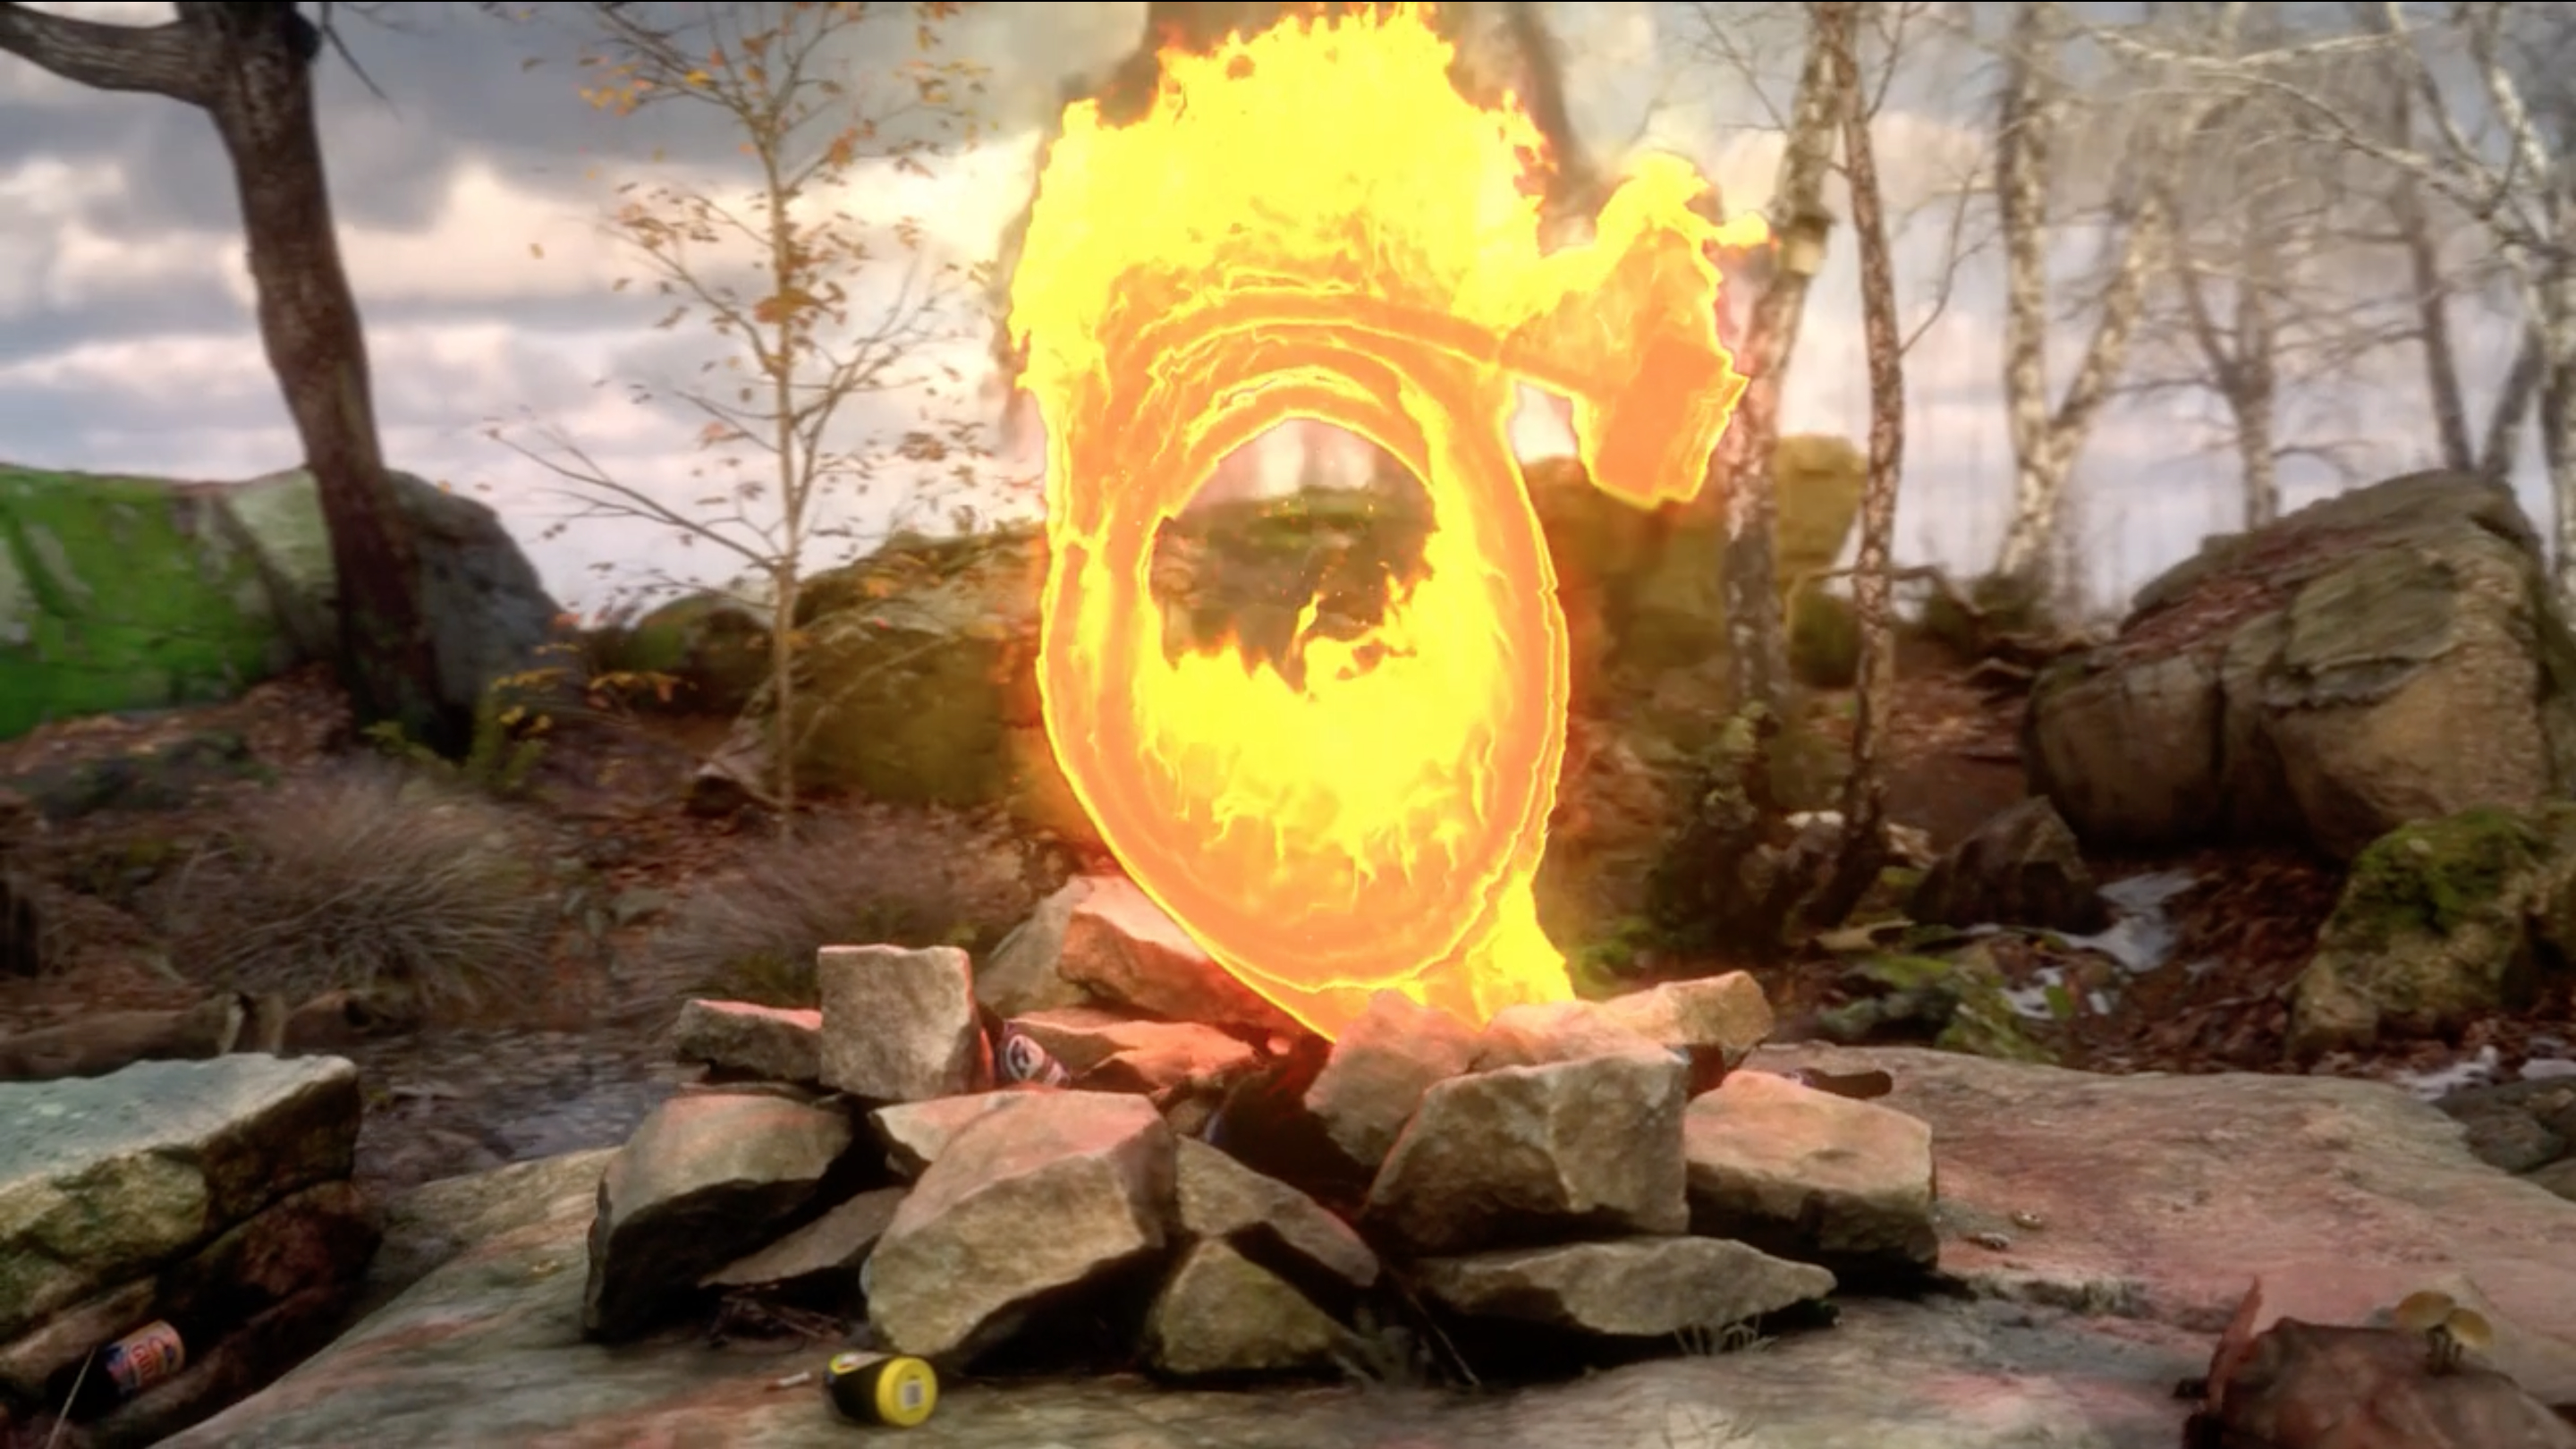 Rustan Söderling, Eternal September, 2015, video still. Tenderpixel.